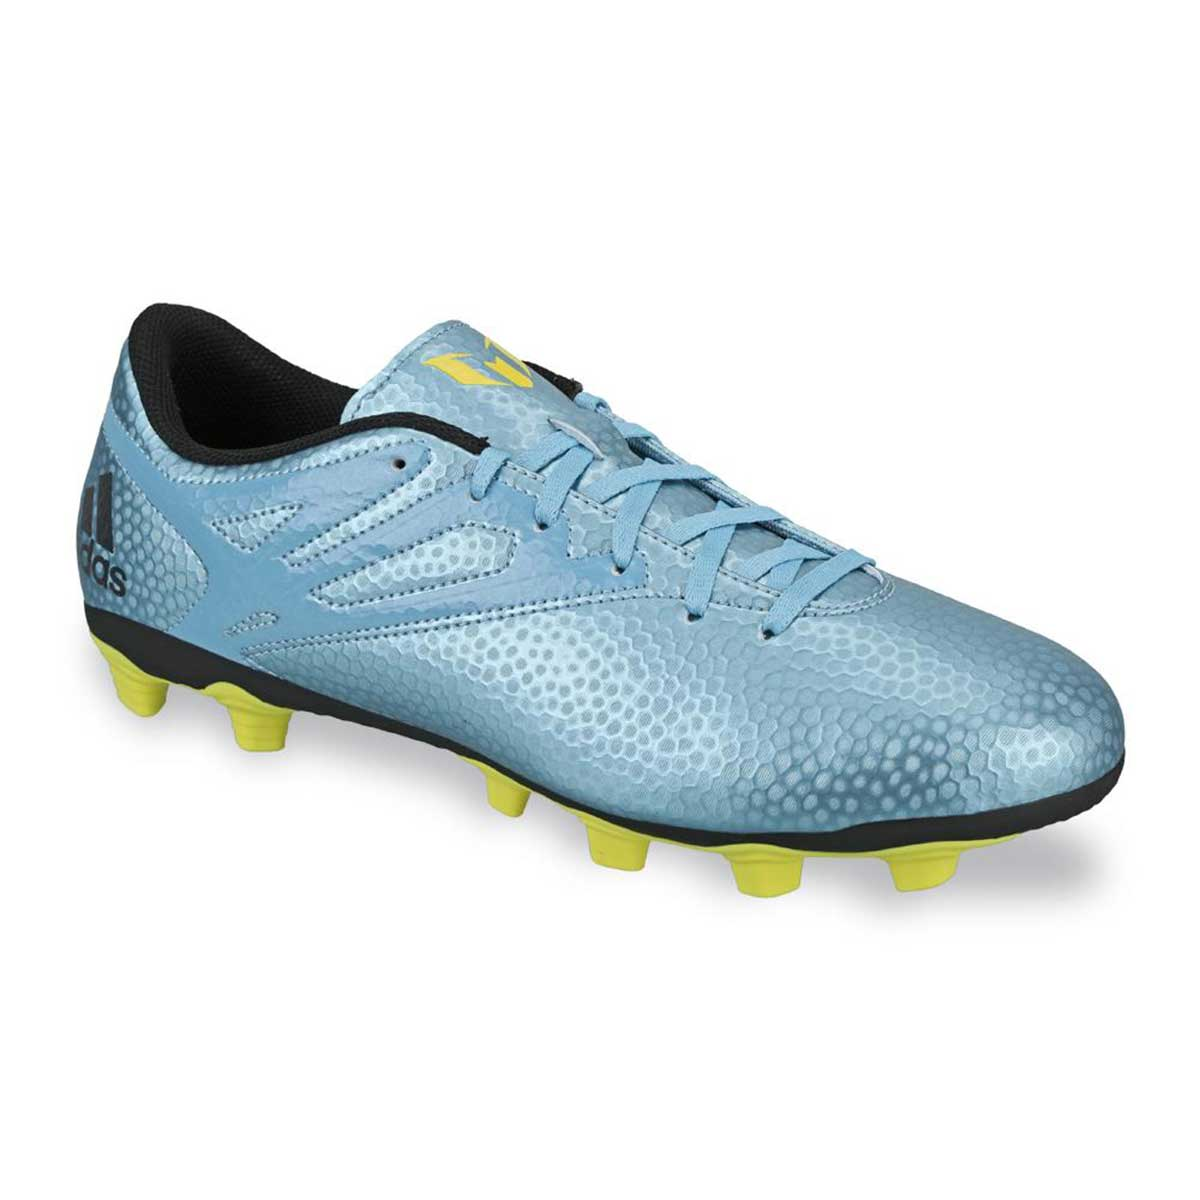 Football Shoes, Football, Sports, Buy, Adidas, Adidas Messi 15.4 FXG  Football Shoes , ,